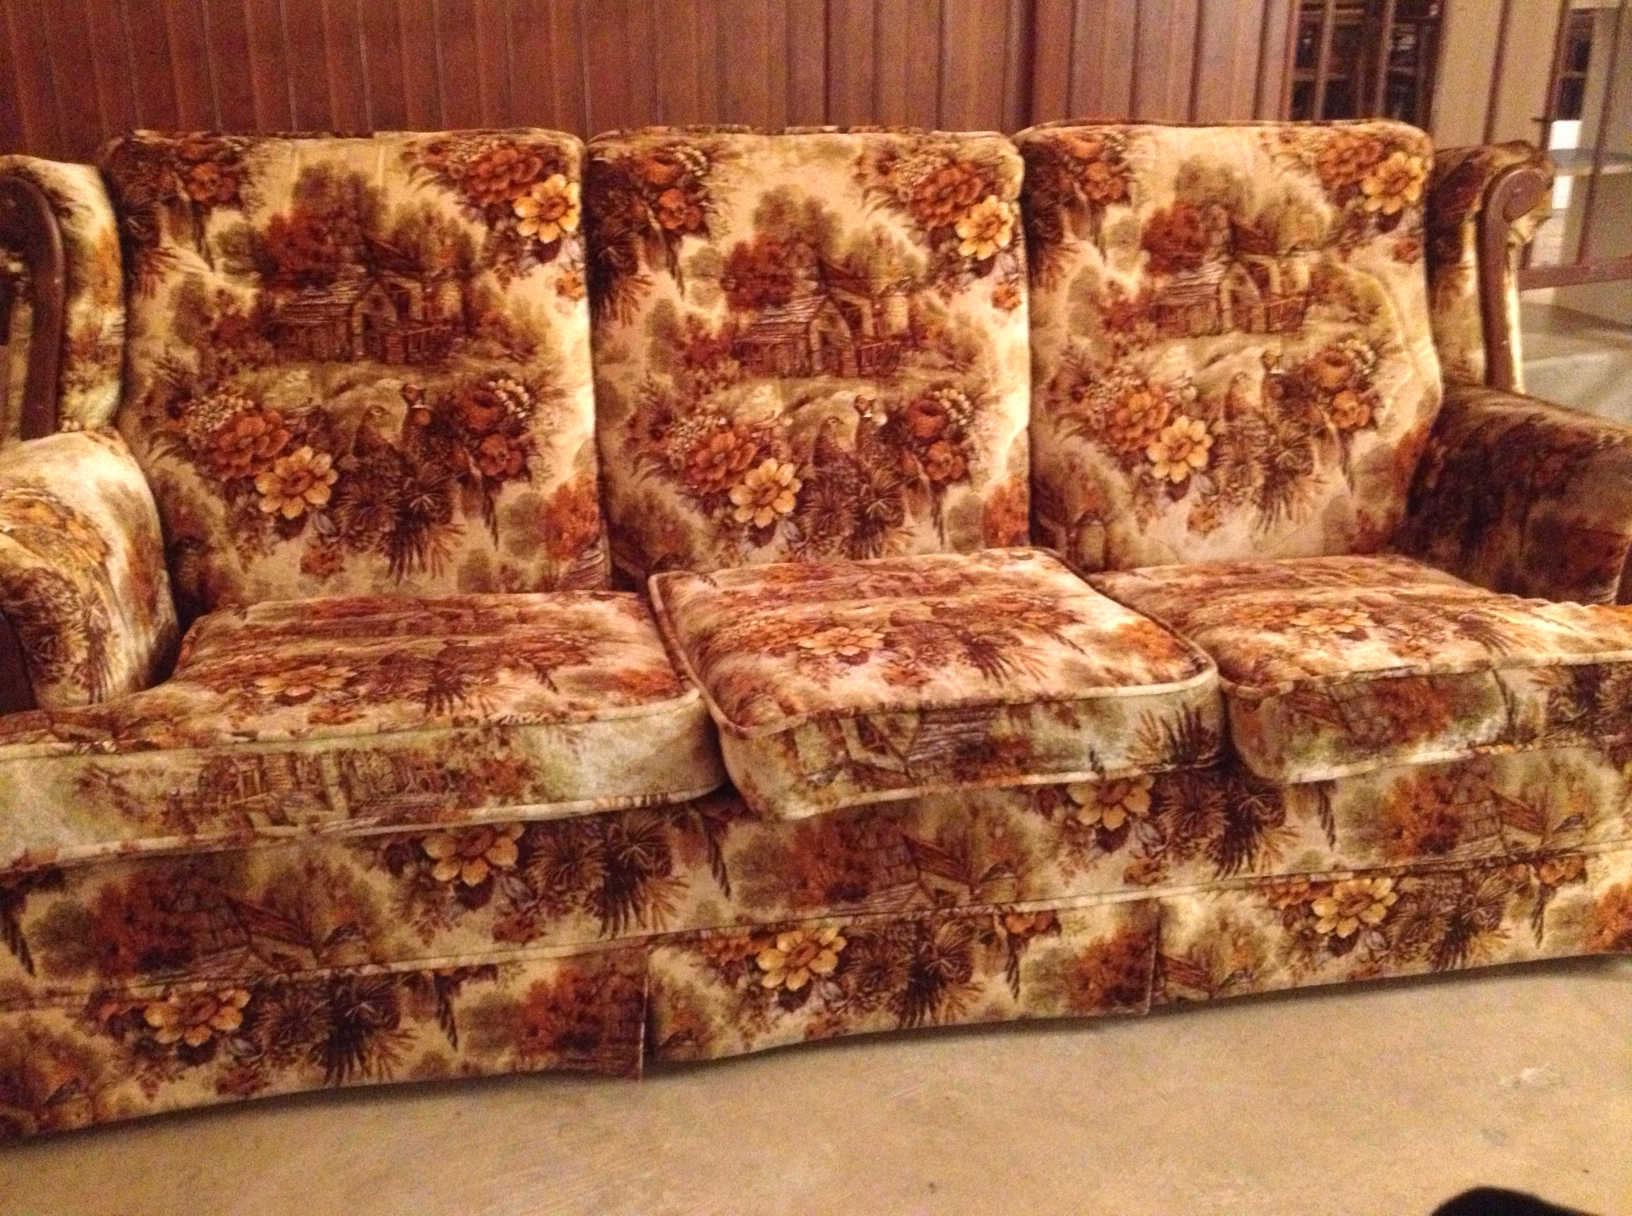 Over A Picture Patterned Sofa In An Autumnal Colored Velour With Scrolling Dark Wood Trim